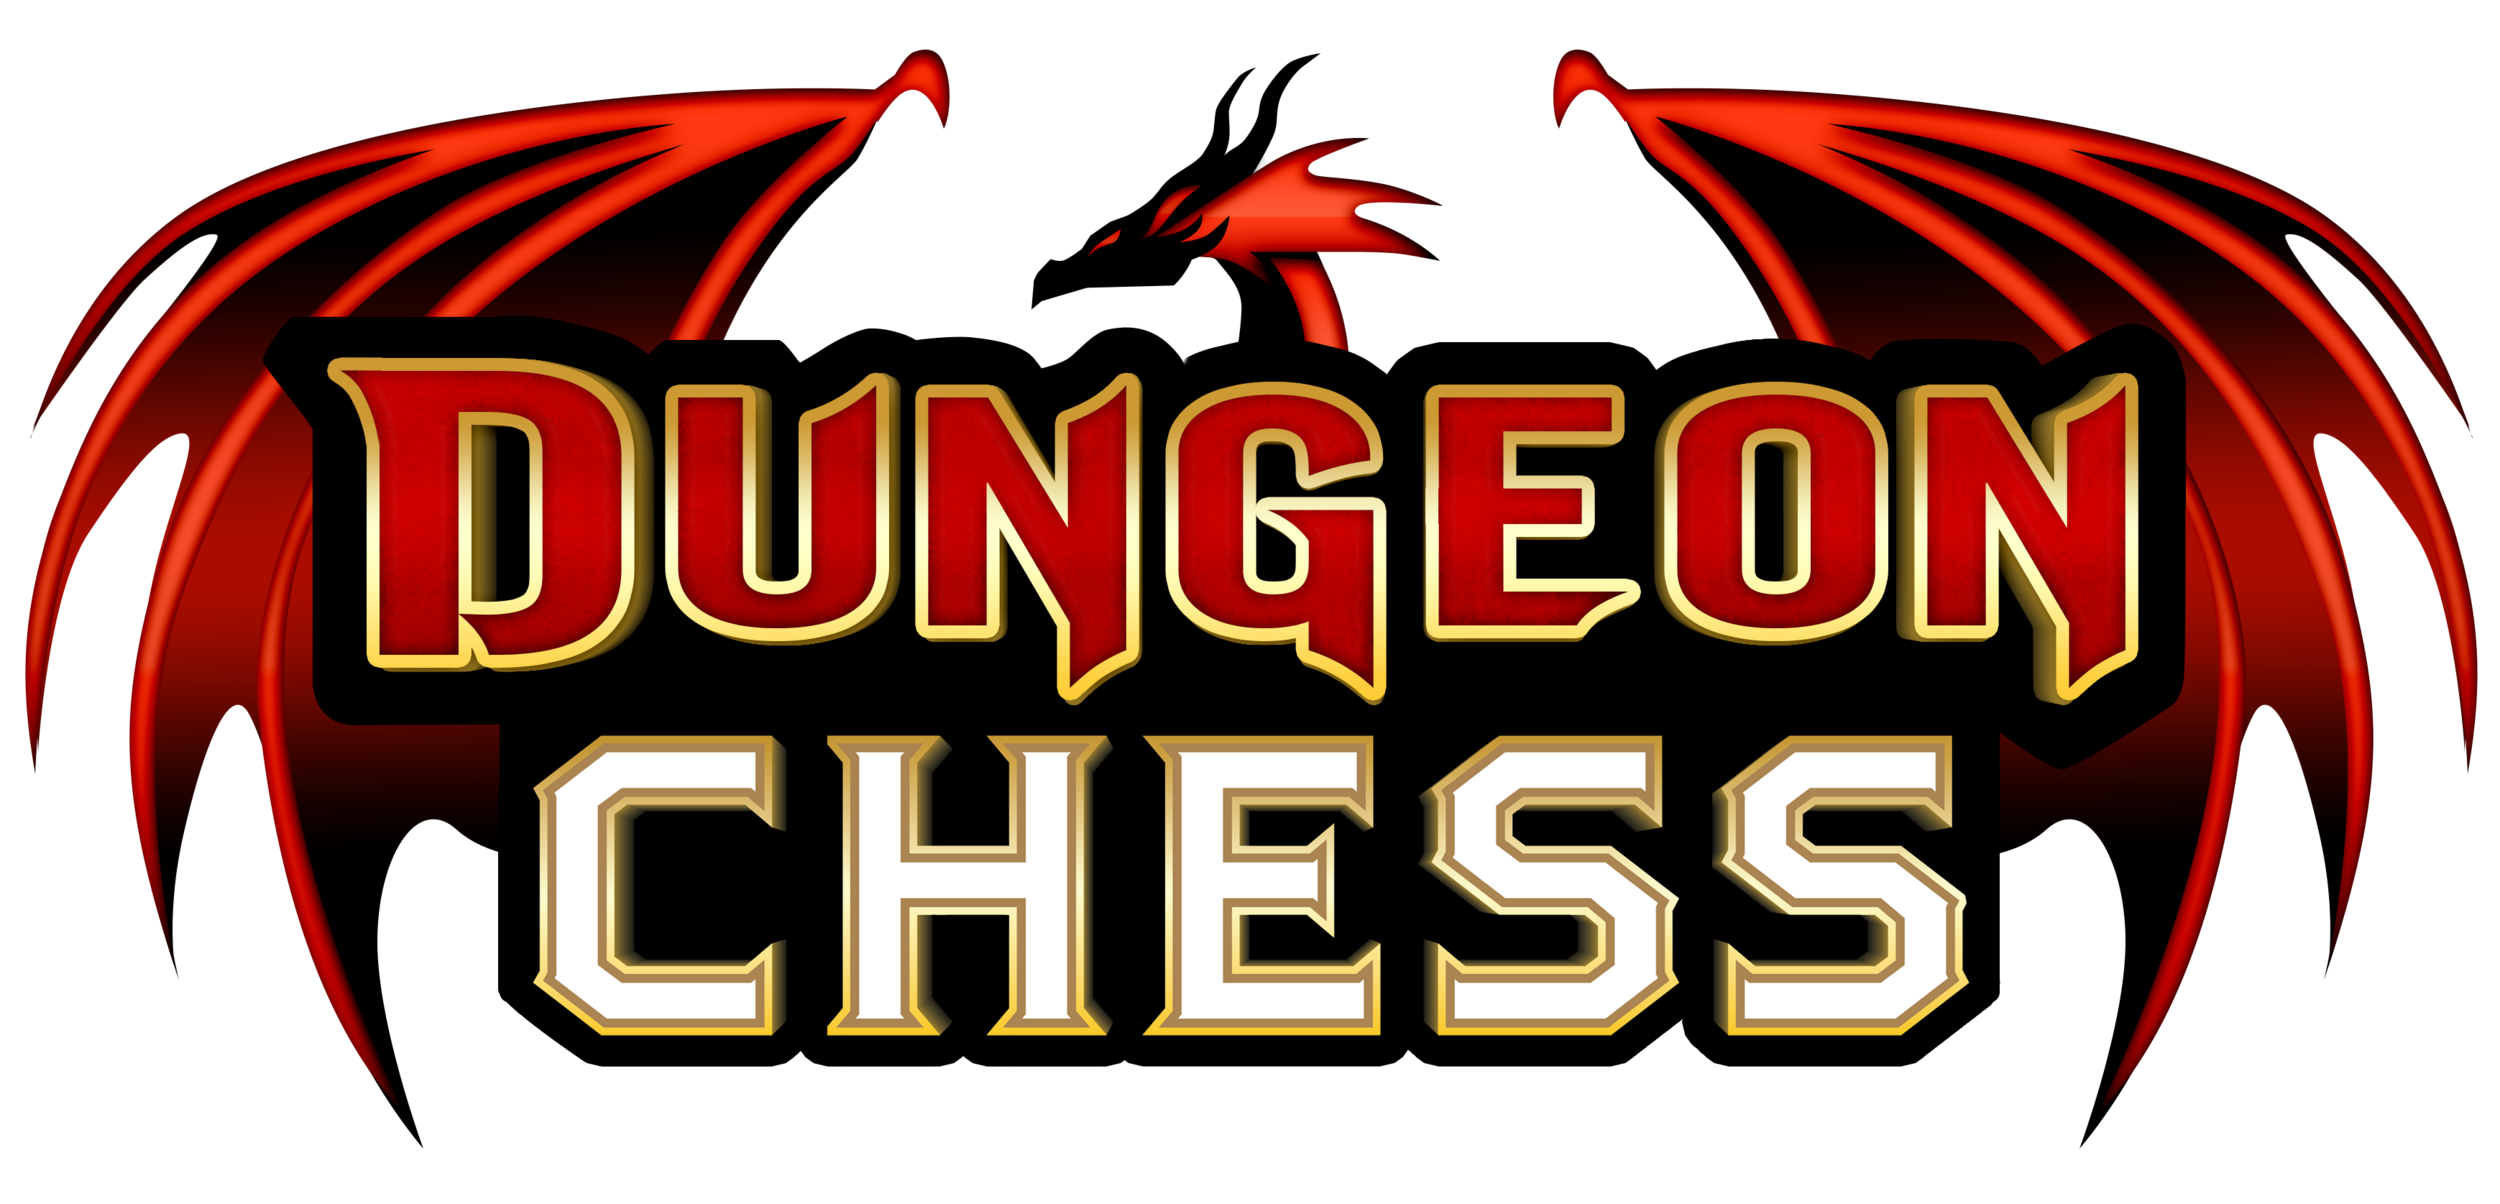 DungeonChess-logo-noStroke.png